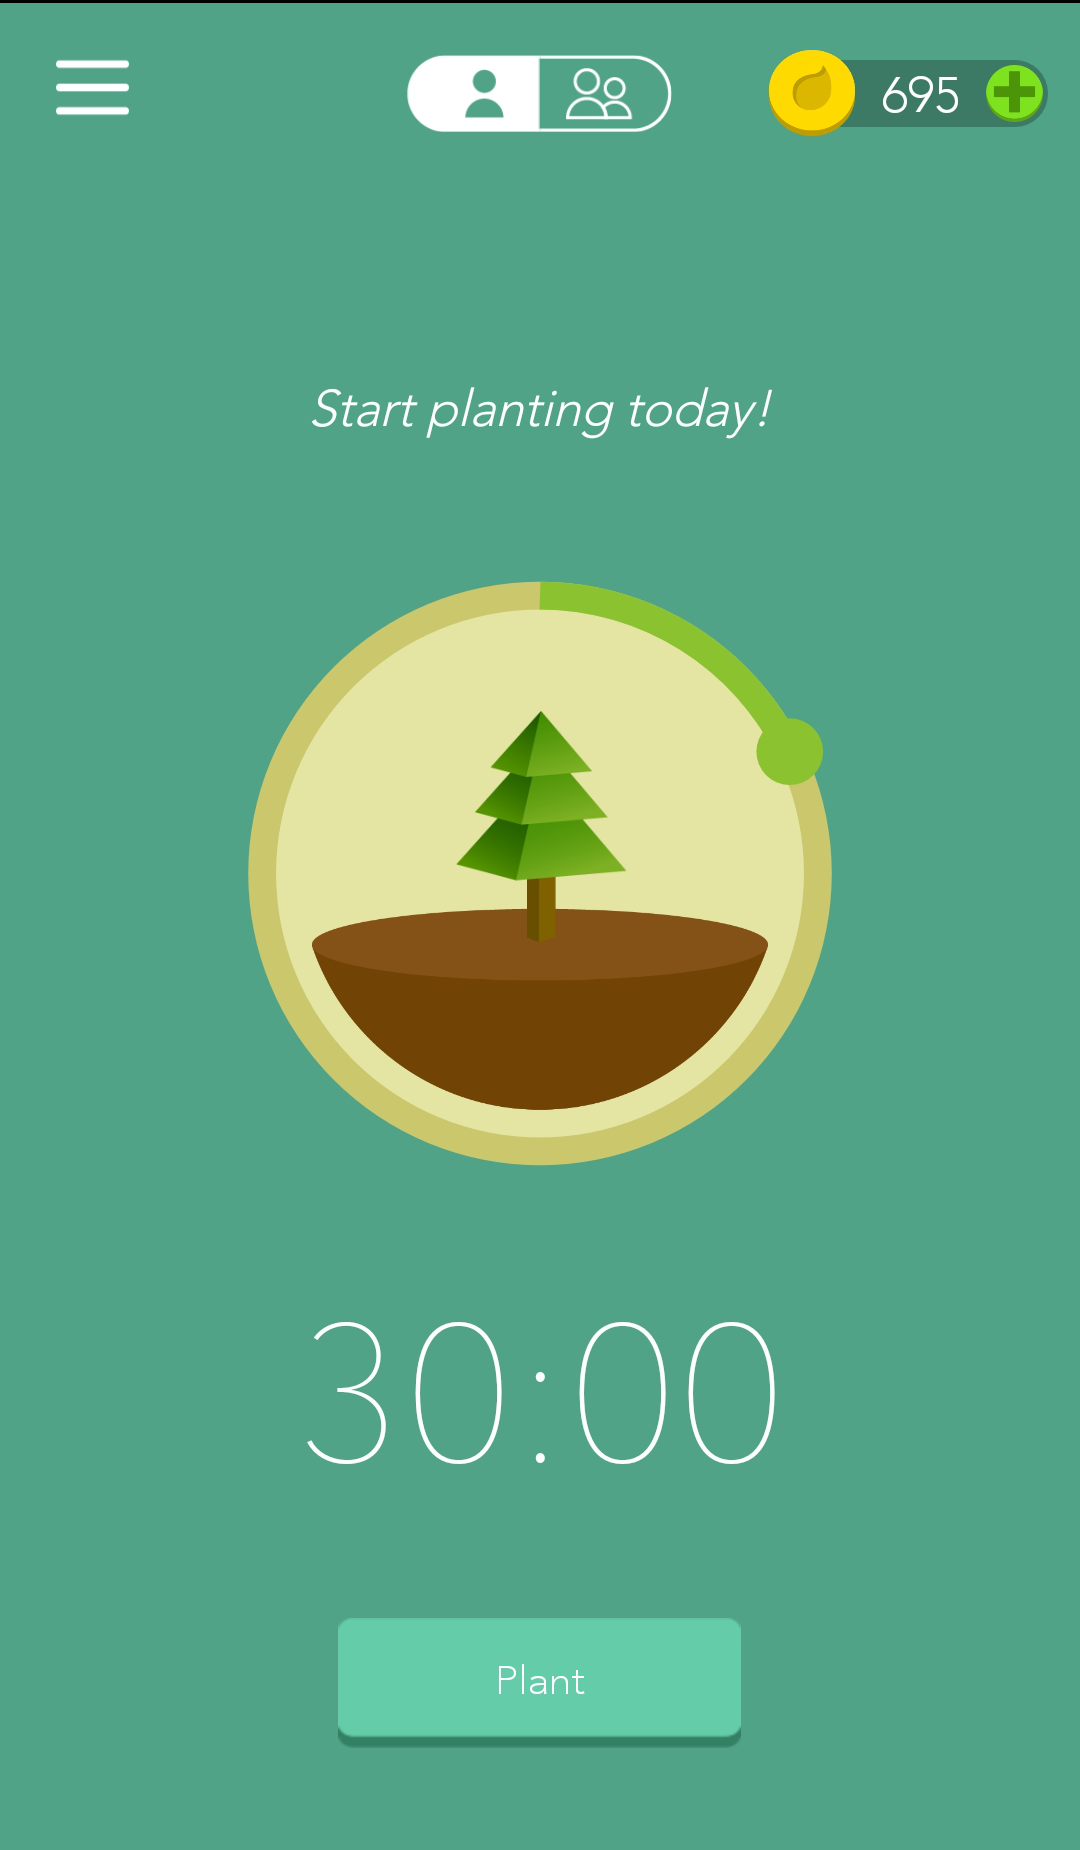 forest - available on Android, iOS, and Google Chrome ExtensionForest - an oldie but a goodie. This adorable little application makes the Pomodoro technique fun and rewarding! You set a timer and